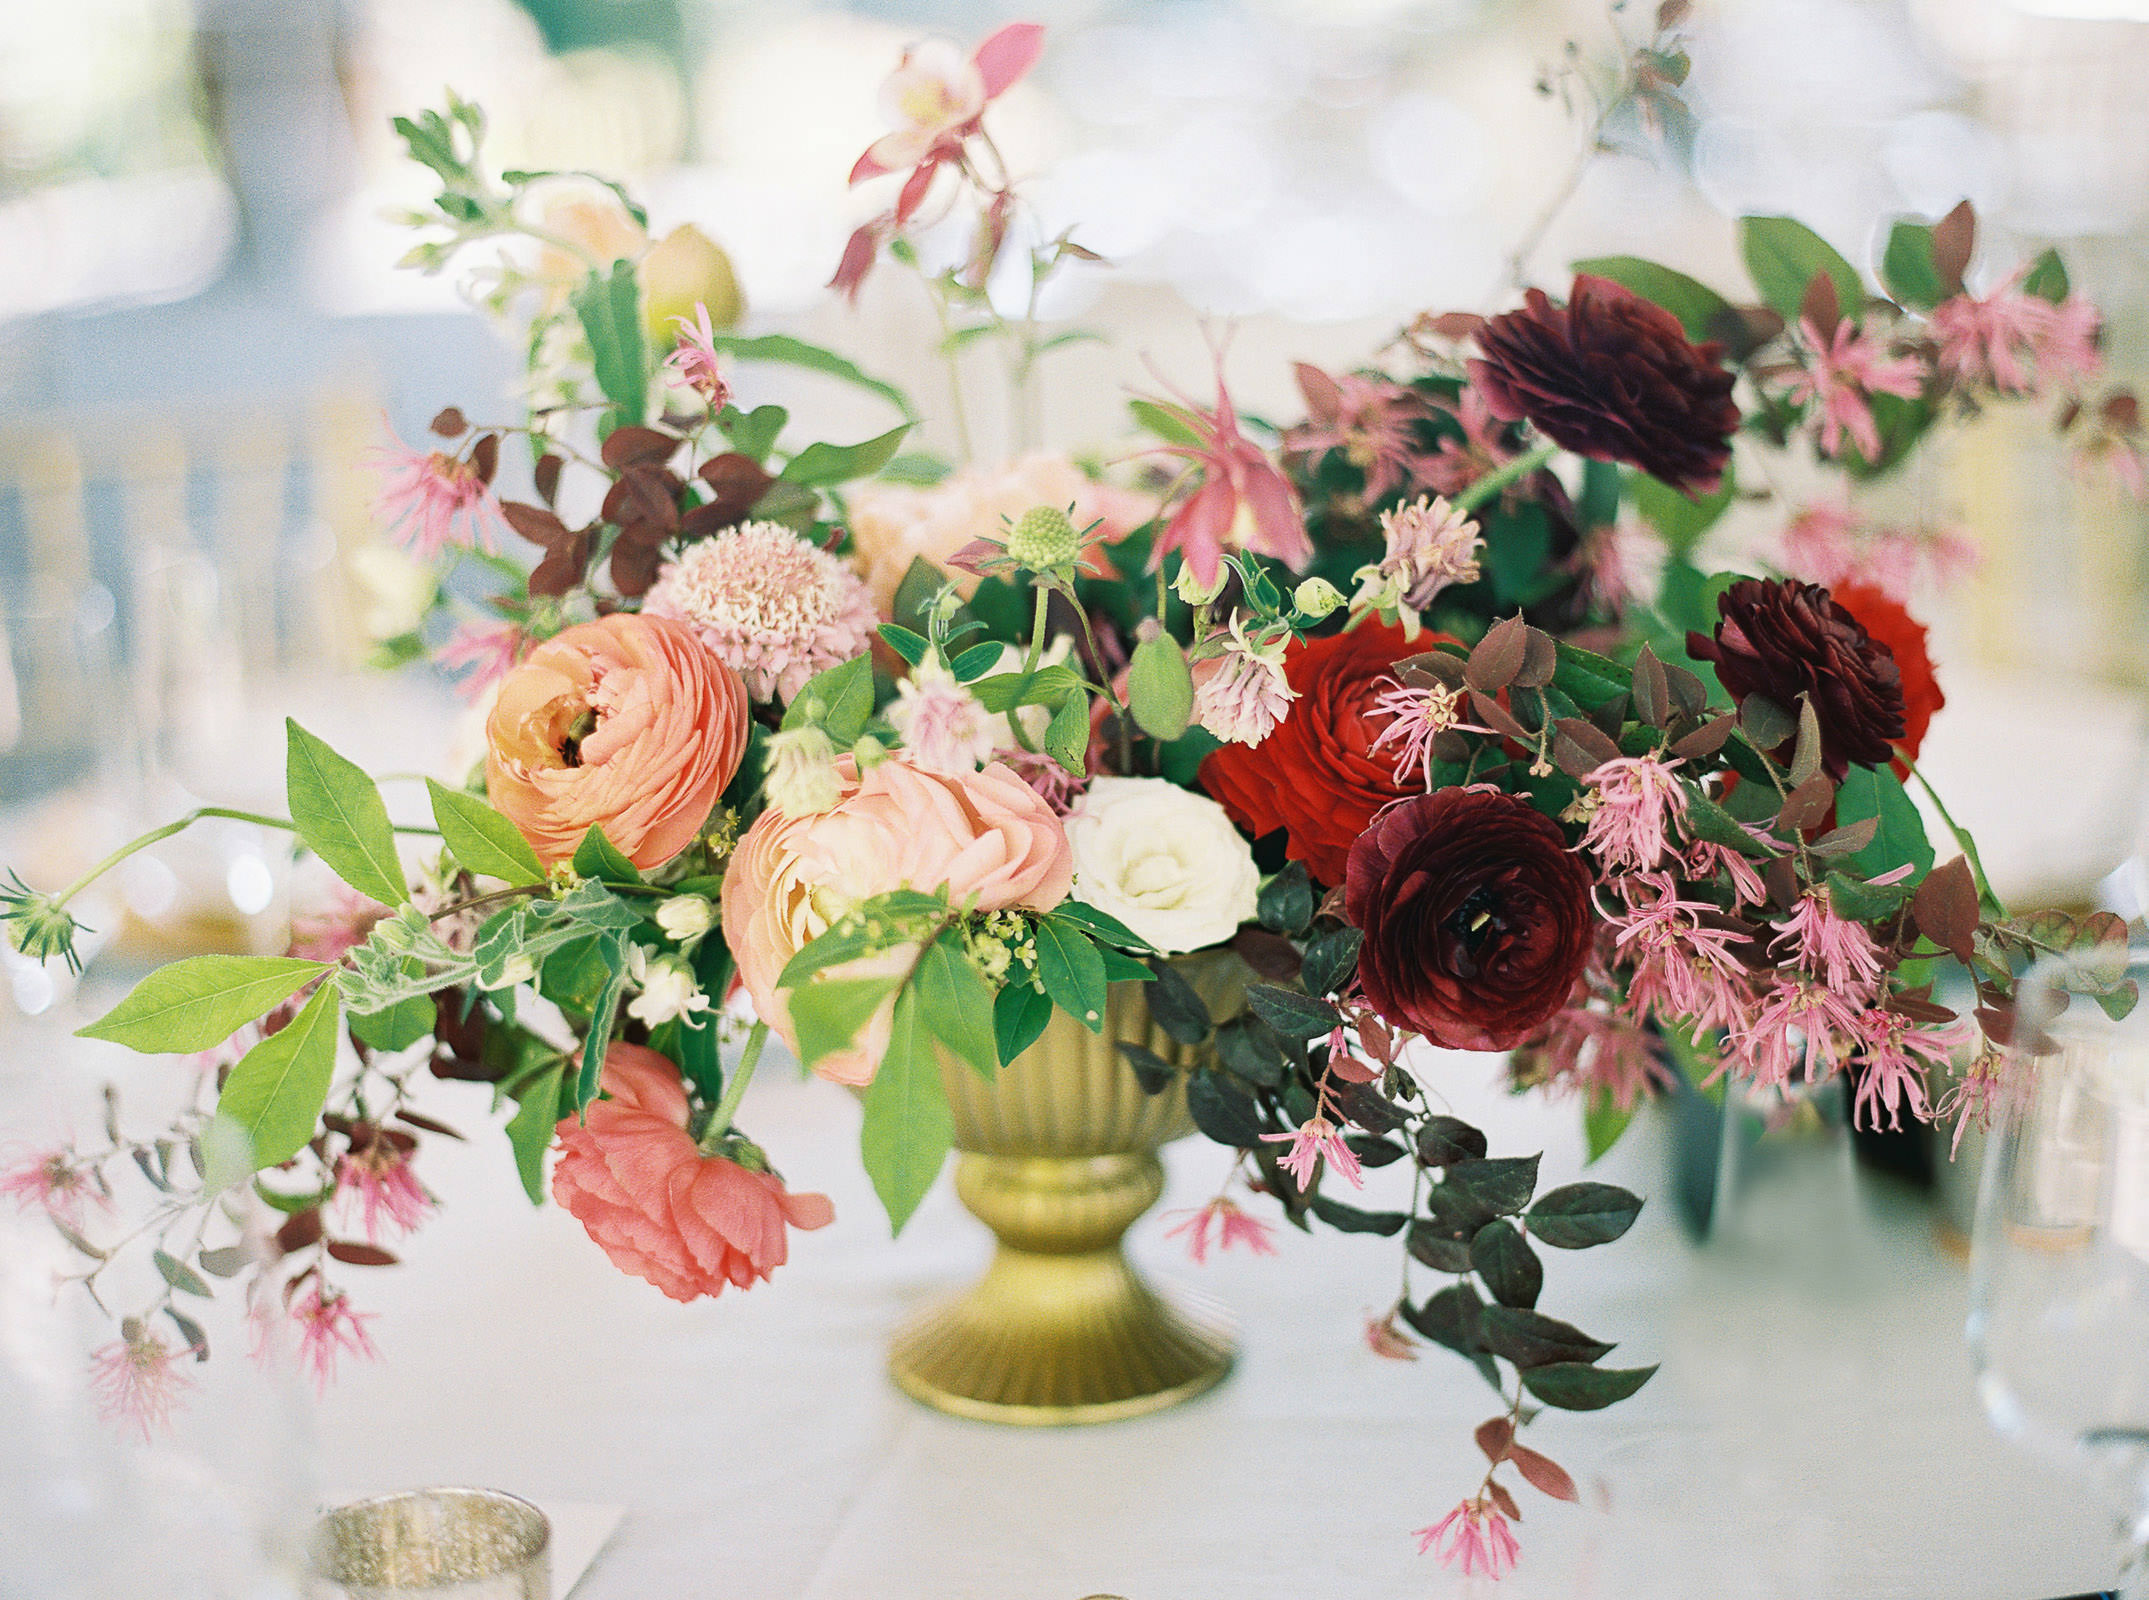 Vibrant spring wedding flowers at a DeLille Cellars wedding